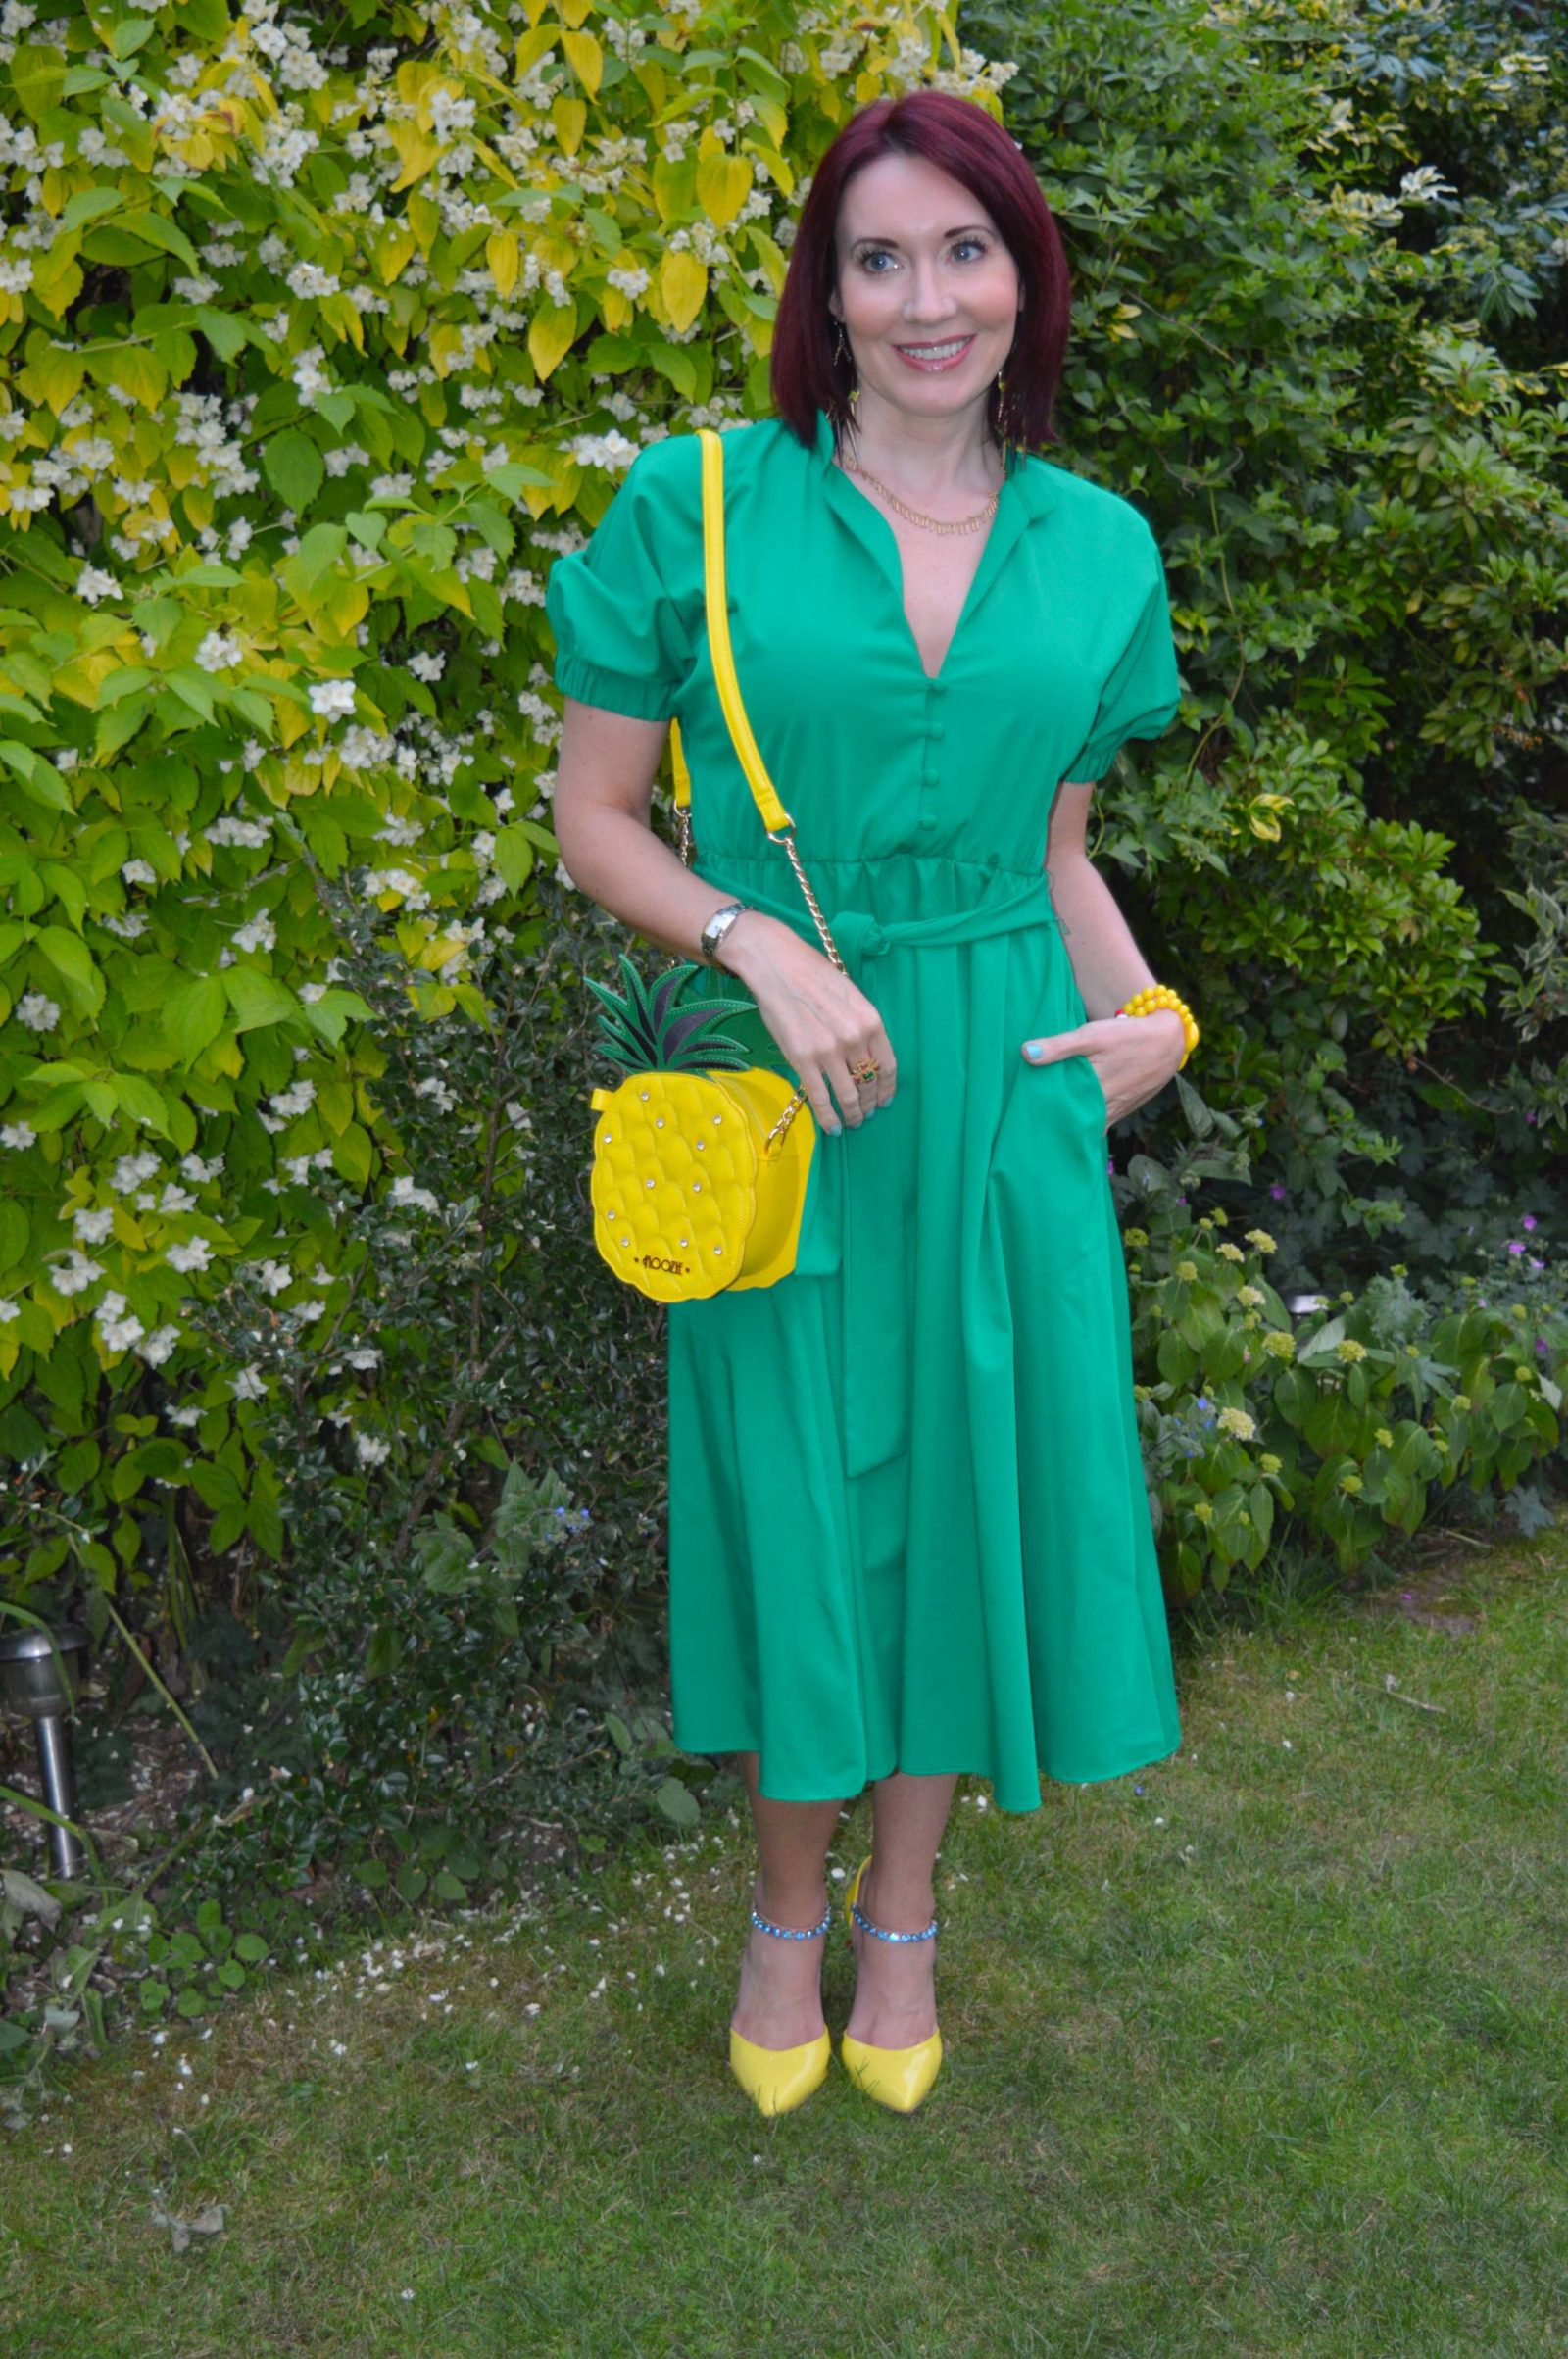 Zara Green midi dress and pineapple bag